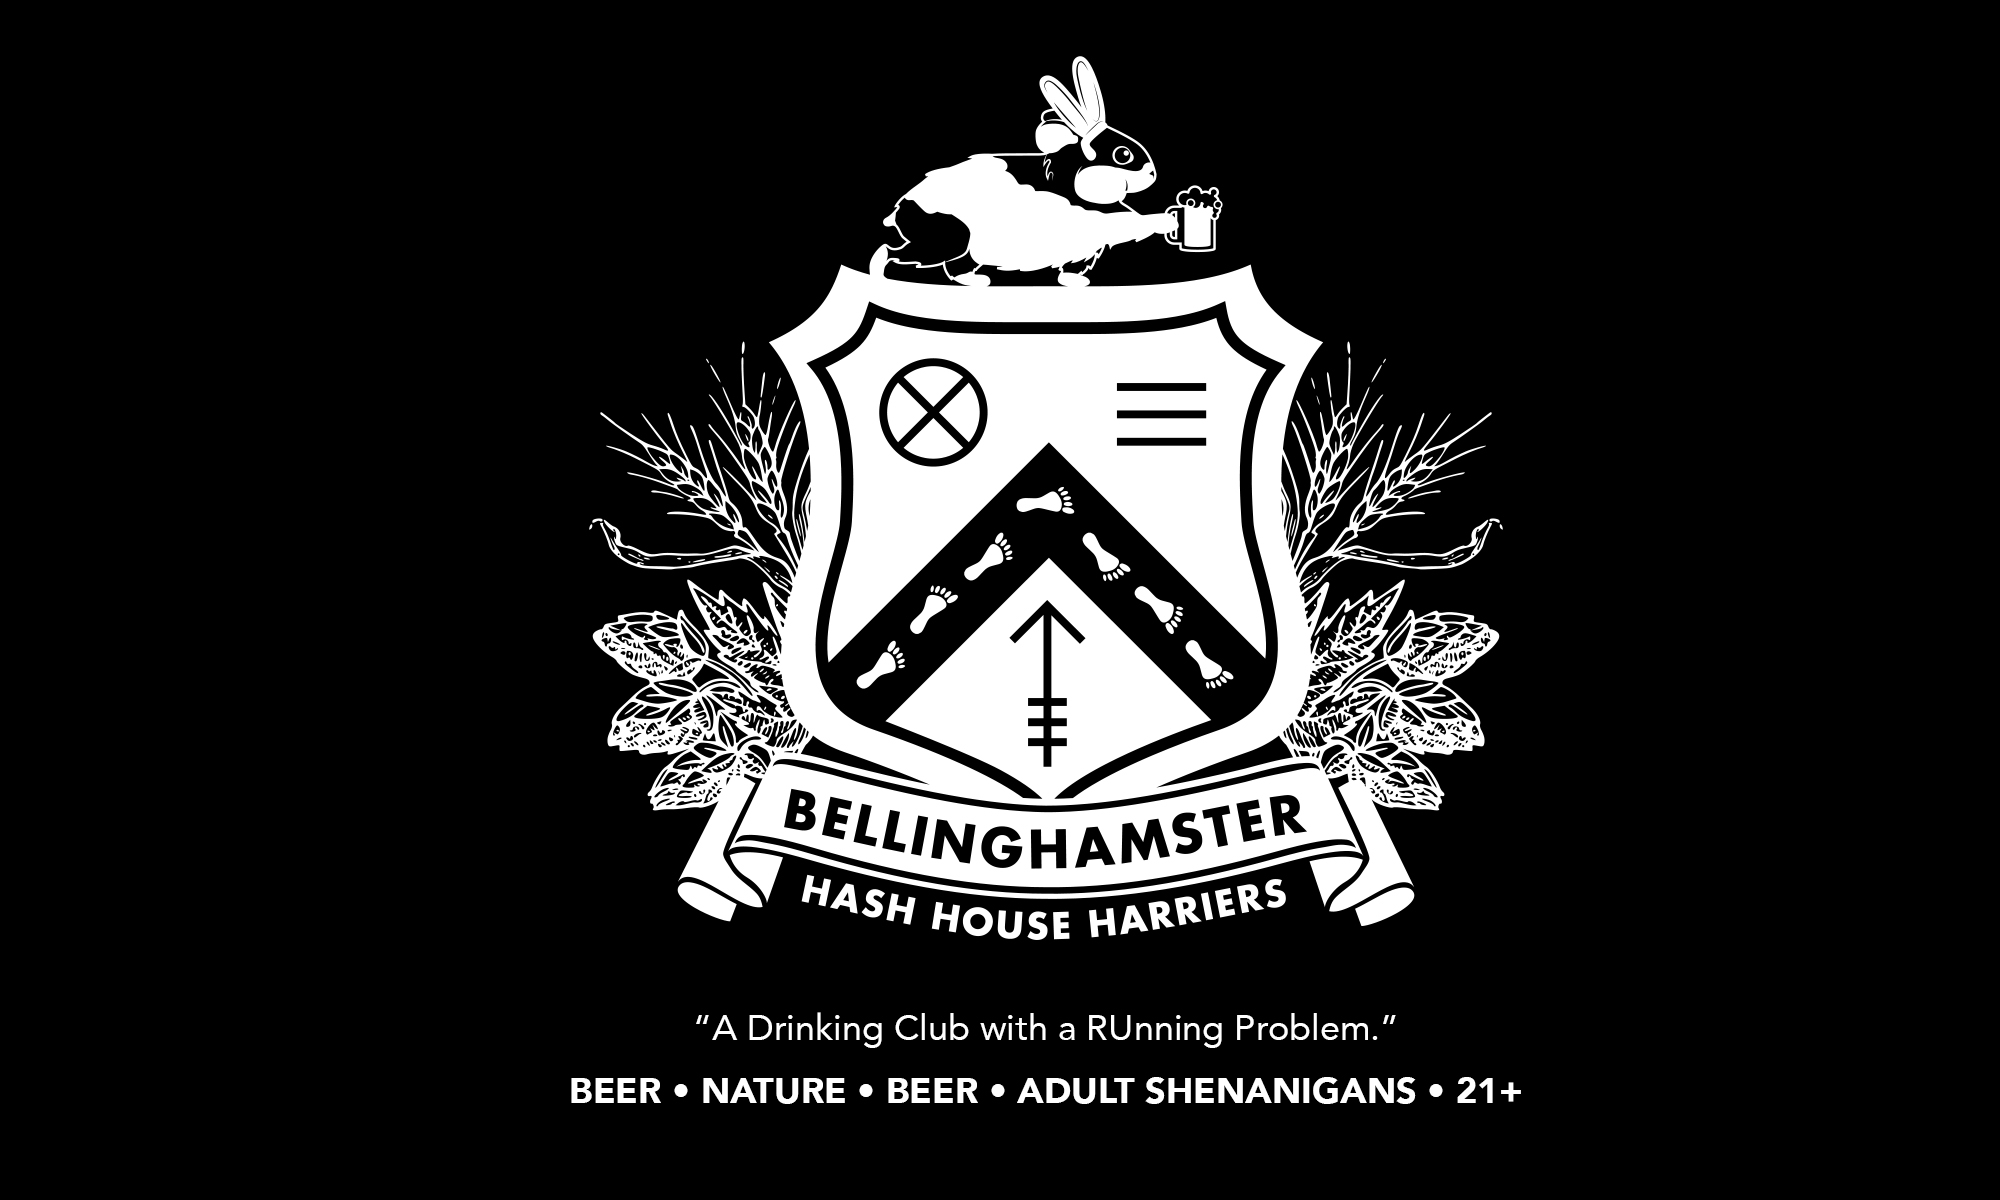 Bellinghamster Hash House Harriers